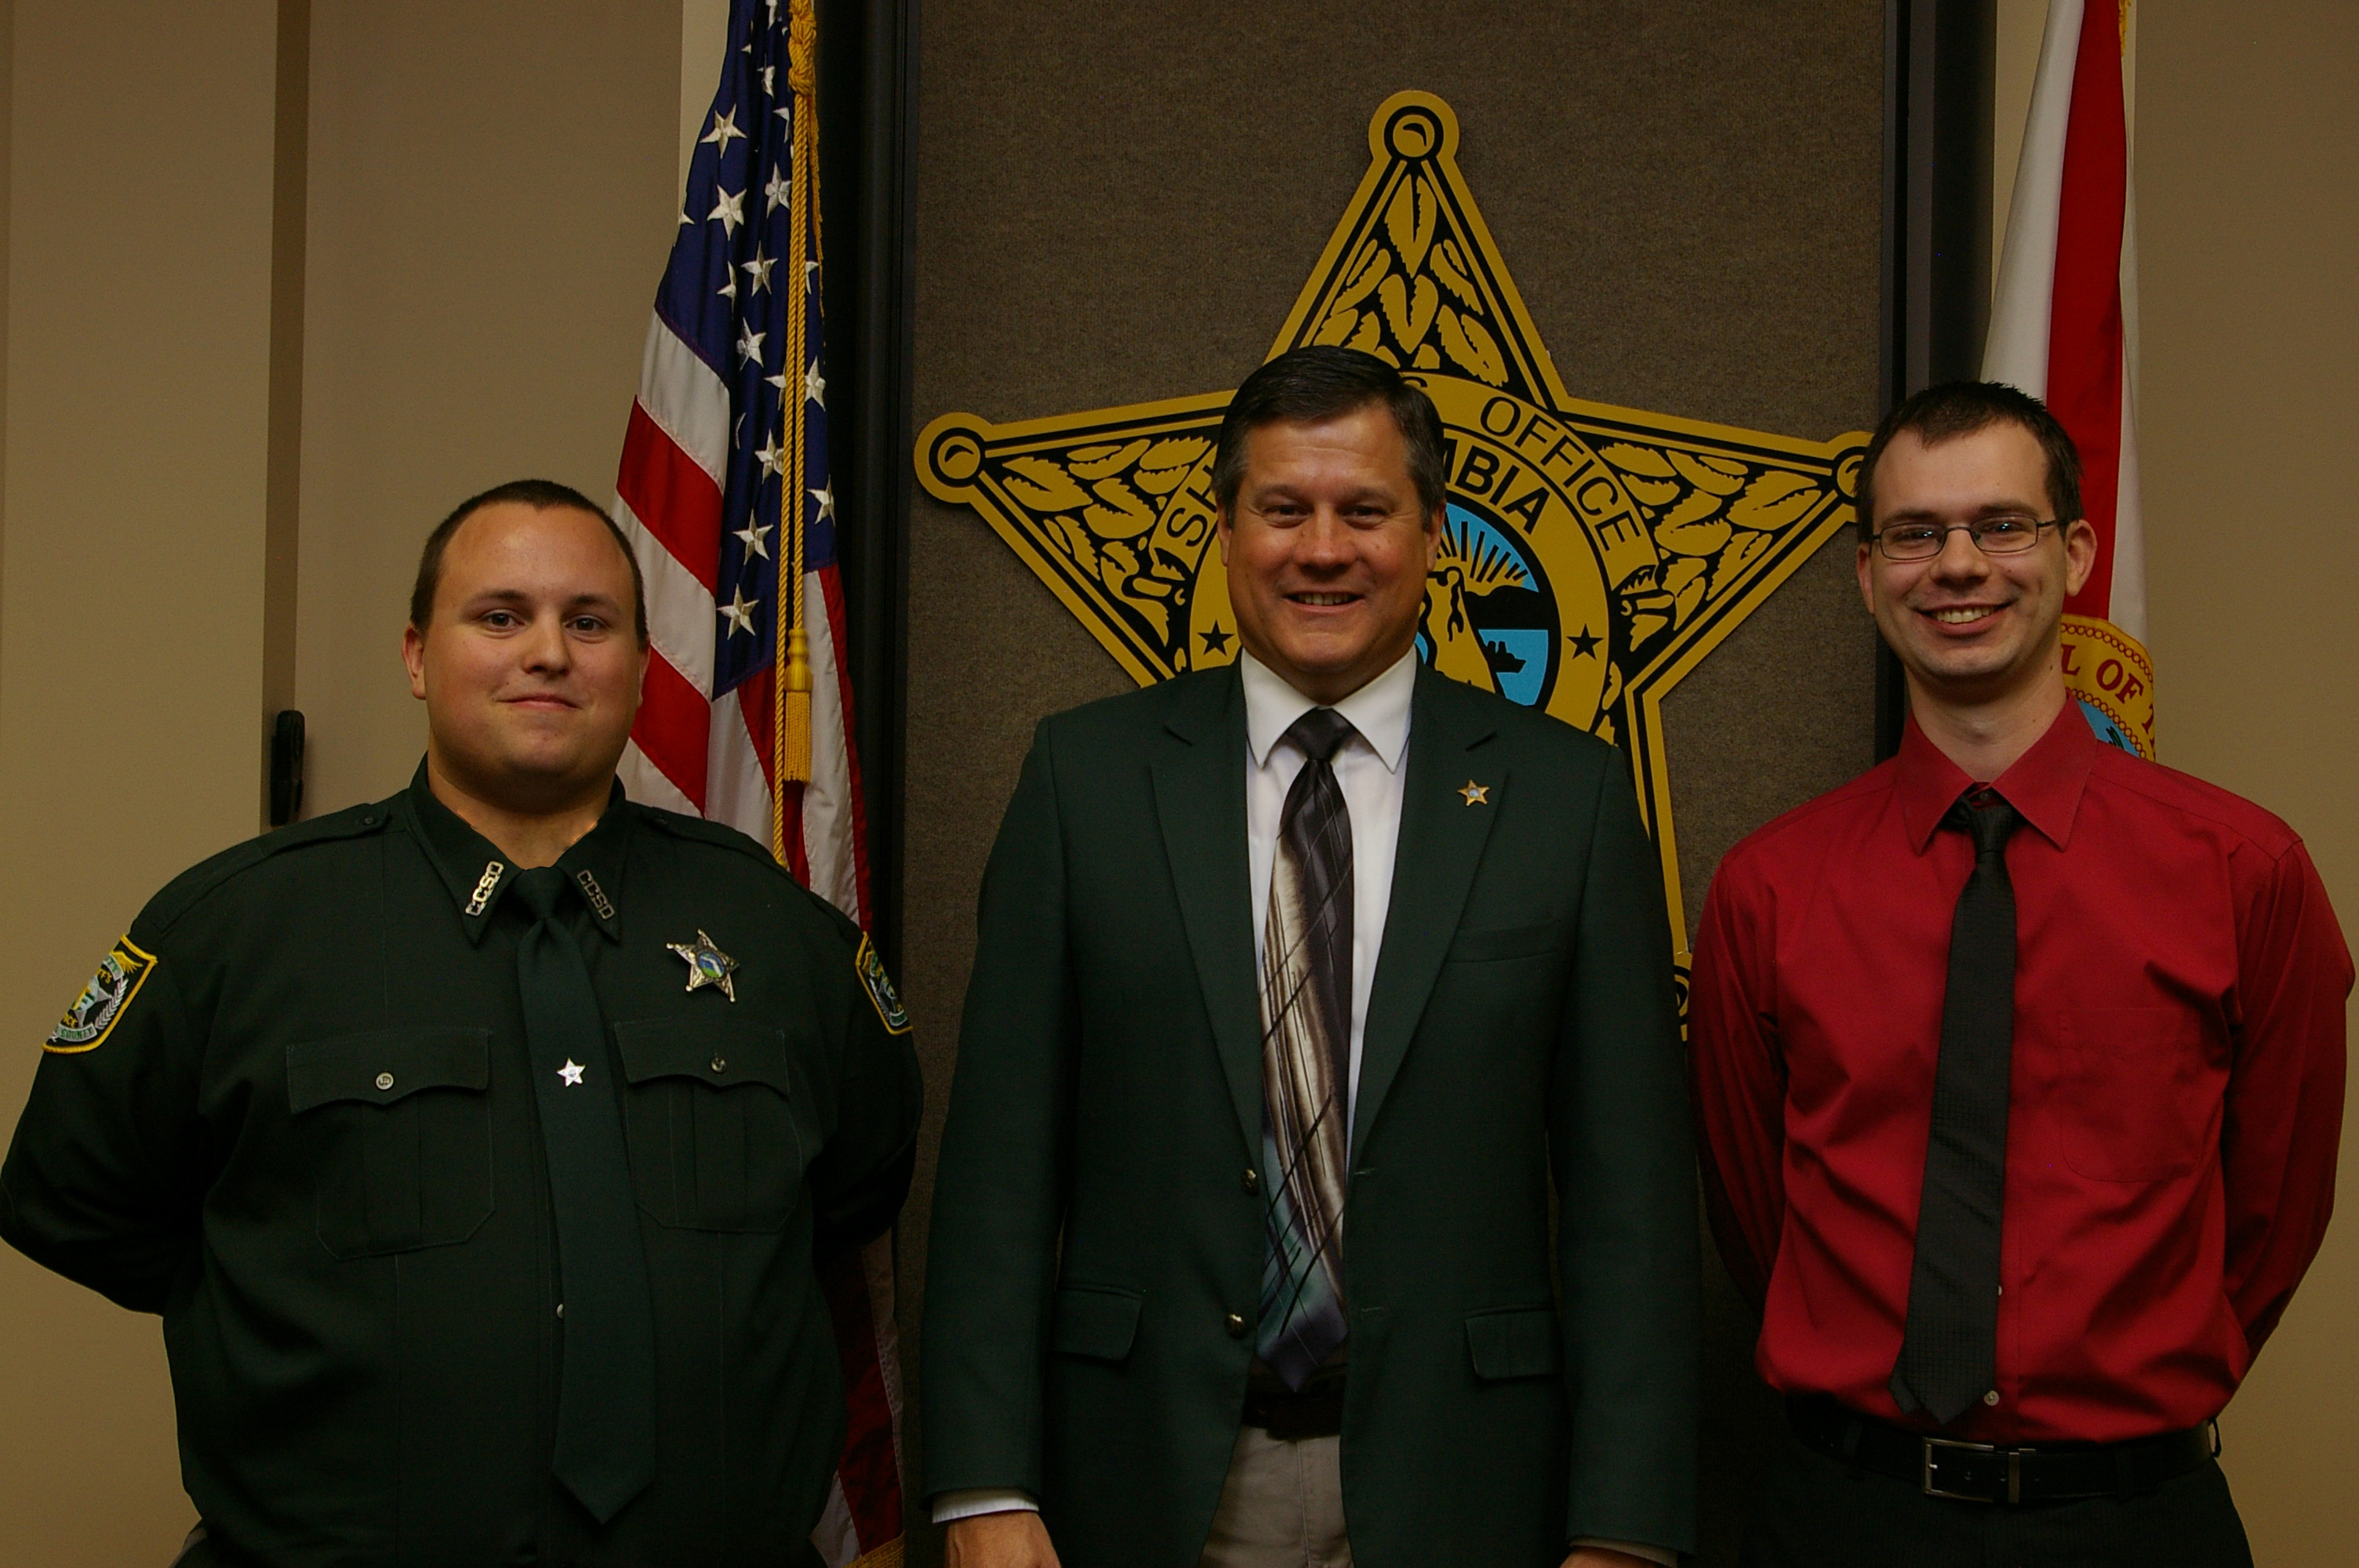 Detention Deputy Evan Brand, Sheriff Mark Hunter, and Mr. John Hartzog